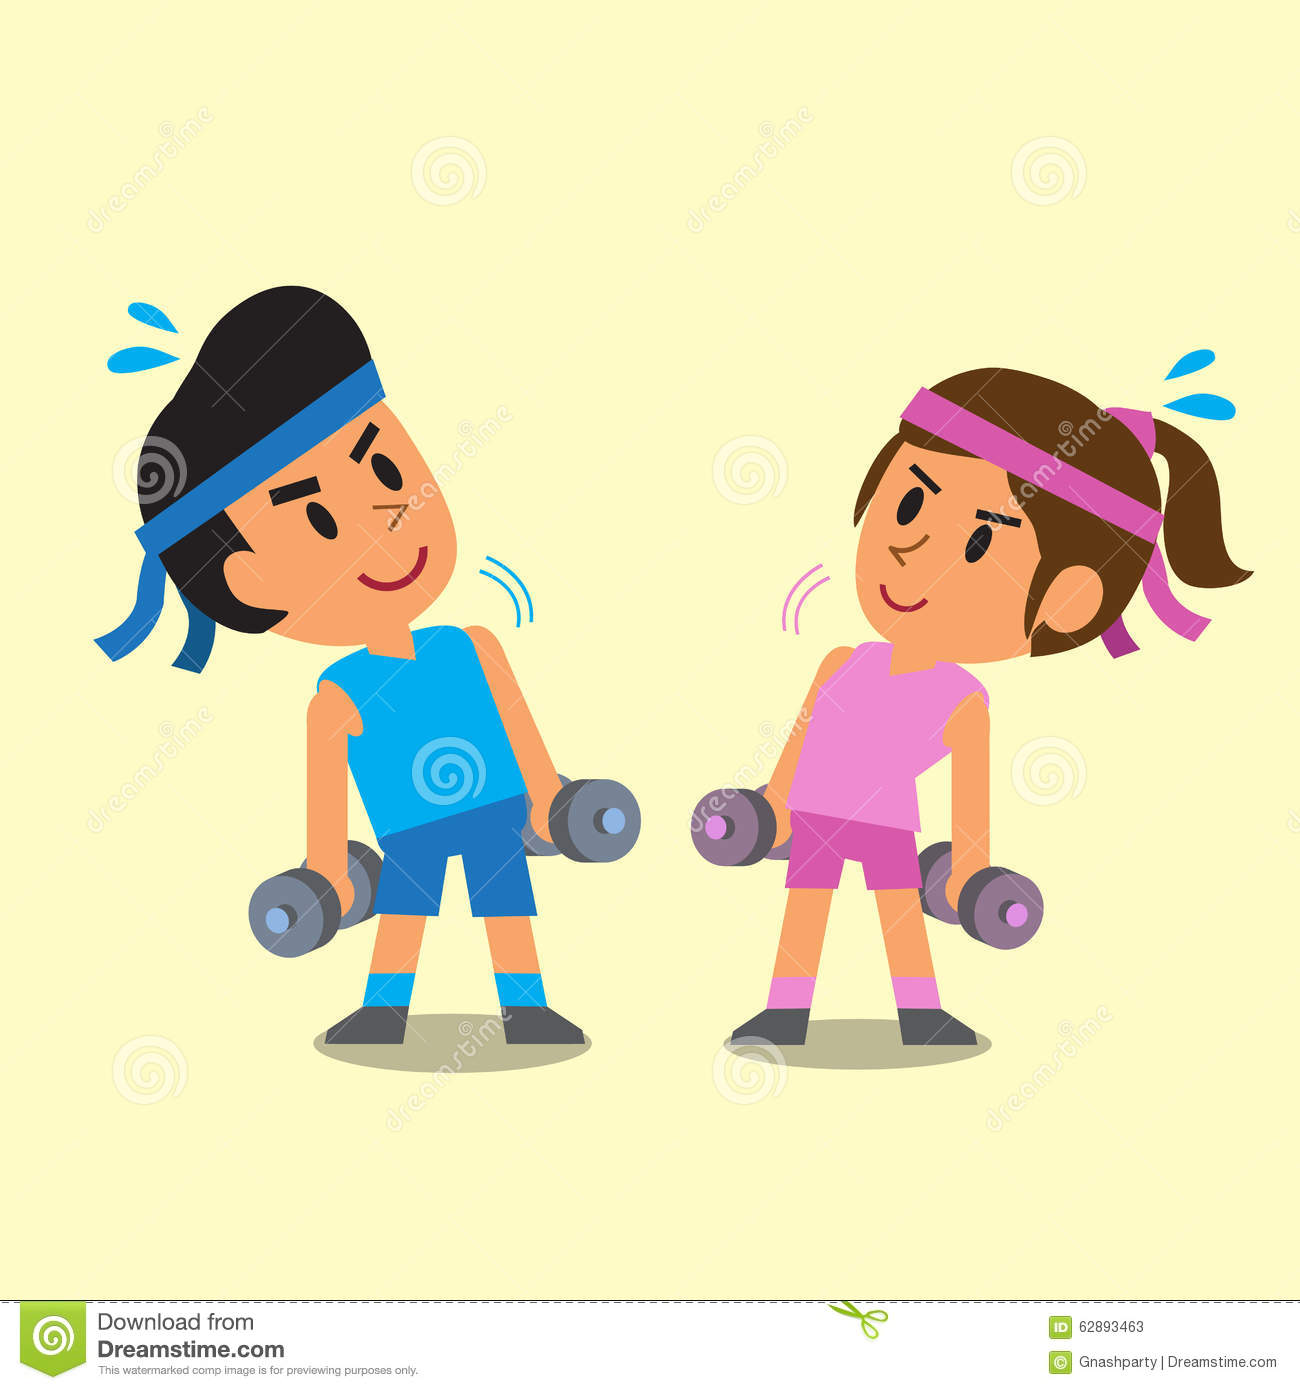 Cartoon Man And Woman Doing Dumbbells Exercise Stock Vector - Image